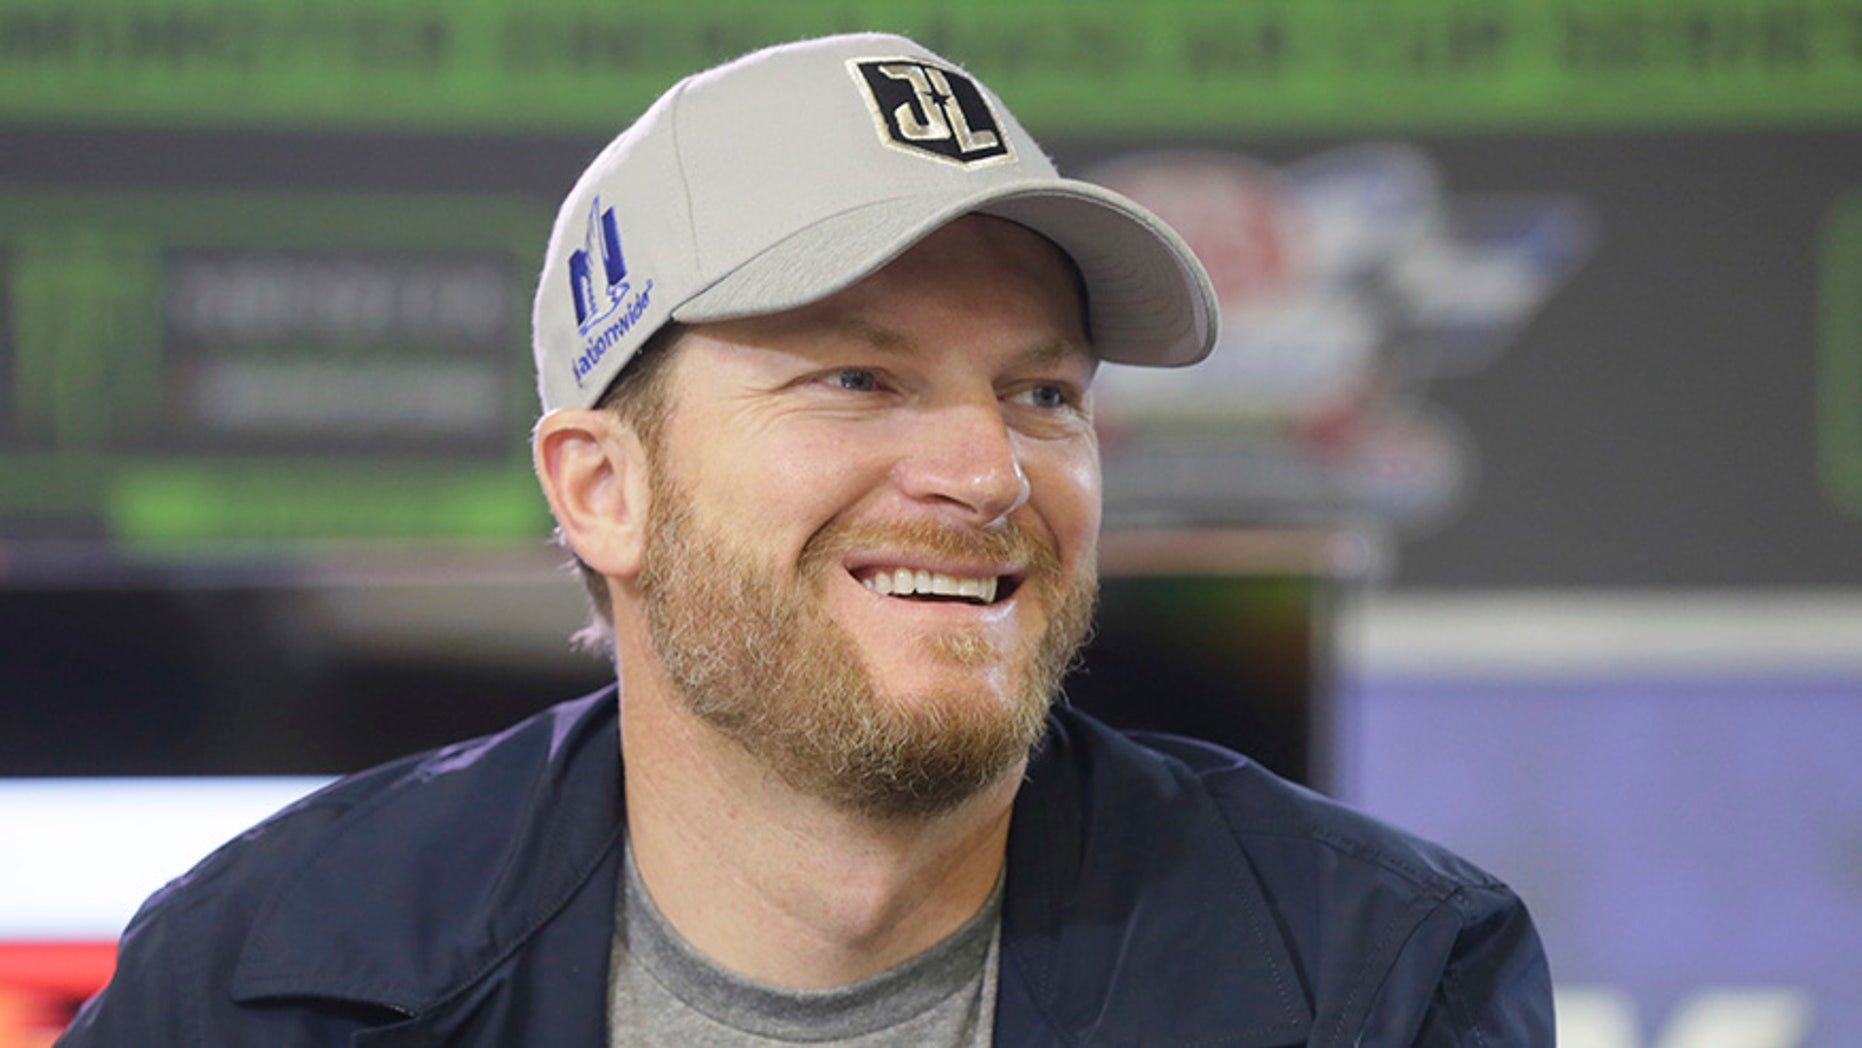 Dale Earnhardt Jr. smiles during a media availability before a weekend NASCAR Cup series auto race at Texas Motor Speedway in Fort Worth, Texas, Friday, Nov. 3, 2017. Earnhardt Jr.(AP Photo/LM Otero)